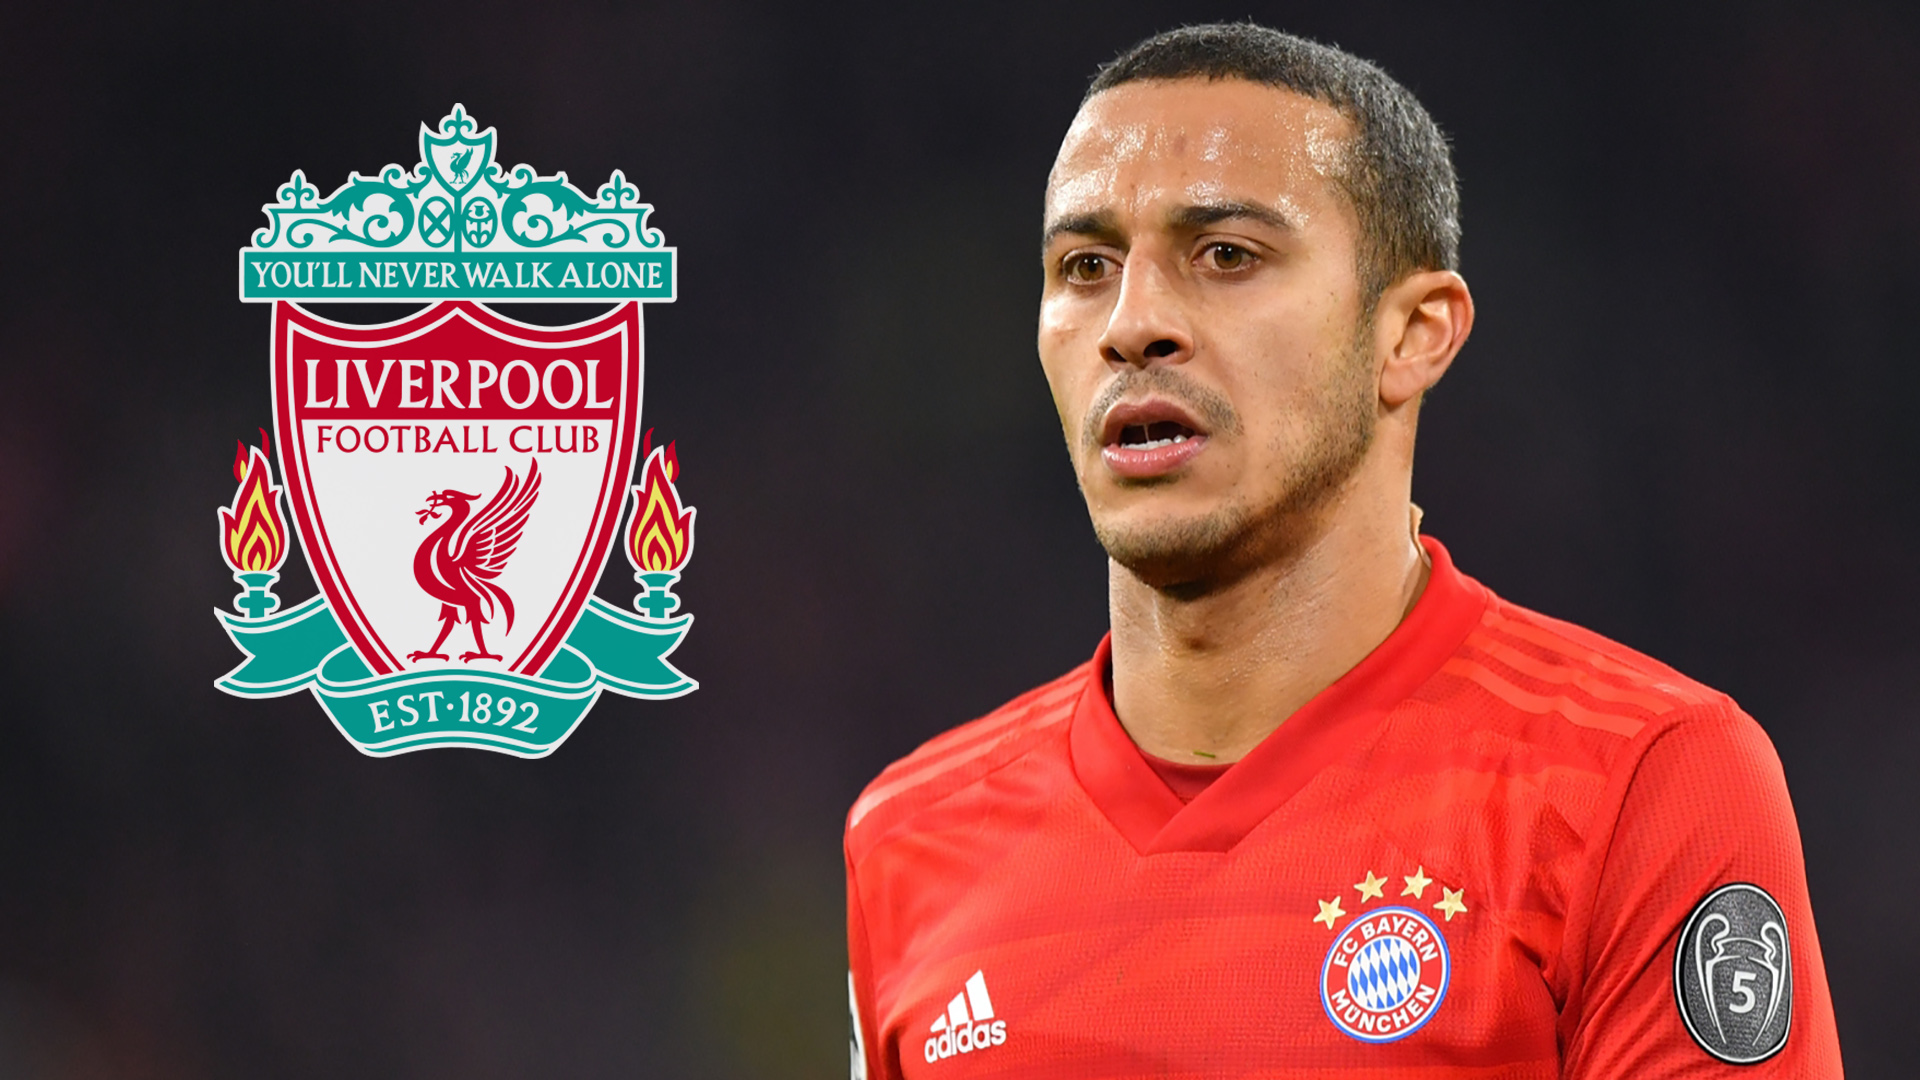 'Thiago is a great player' - Klopp repeats praise for Bayern Munich star as Liverpool rumours persist